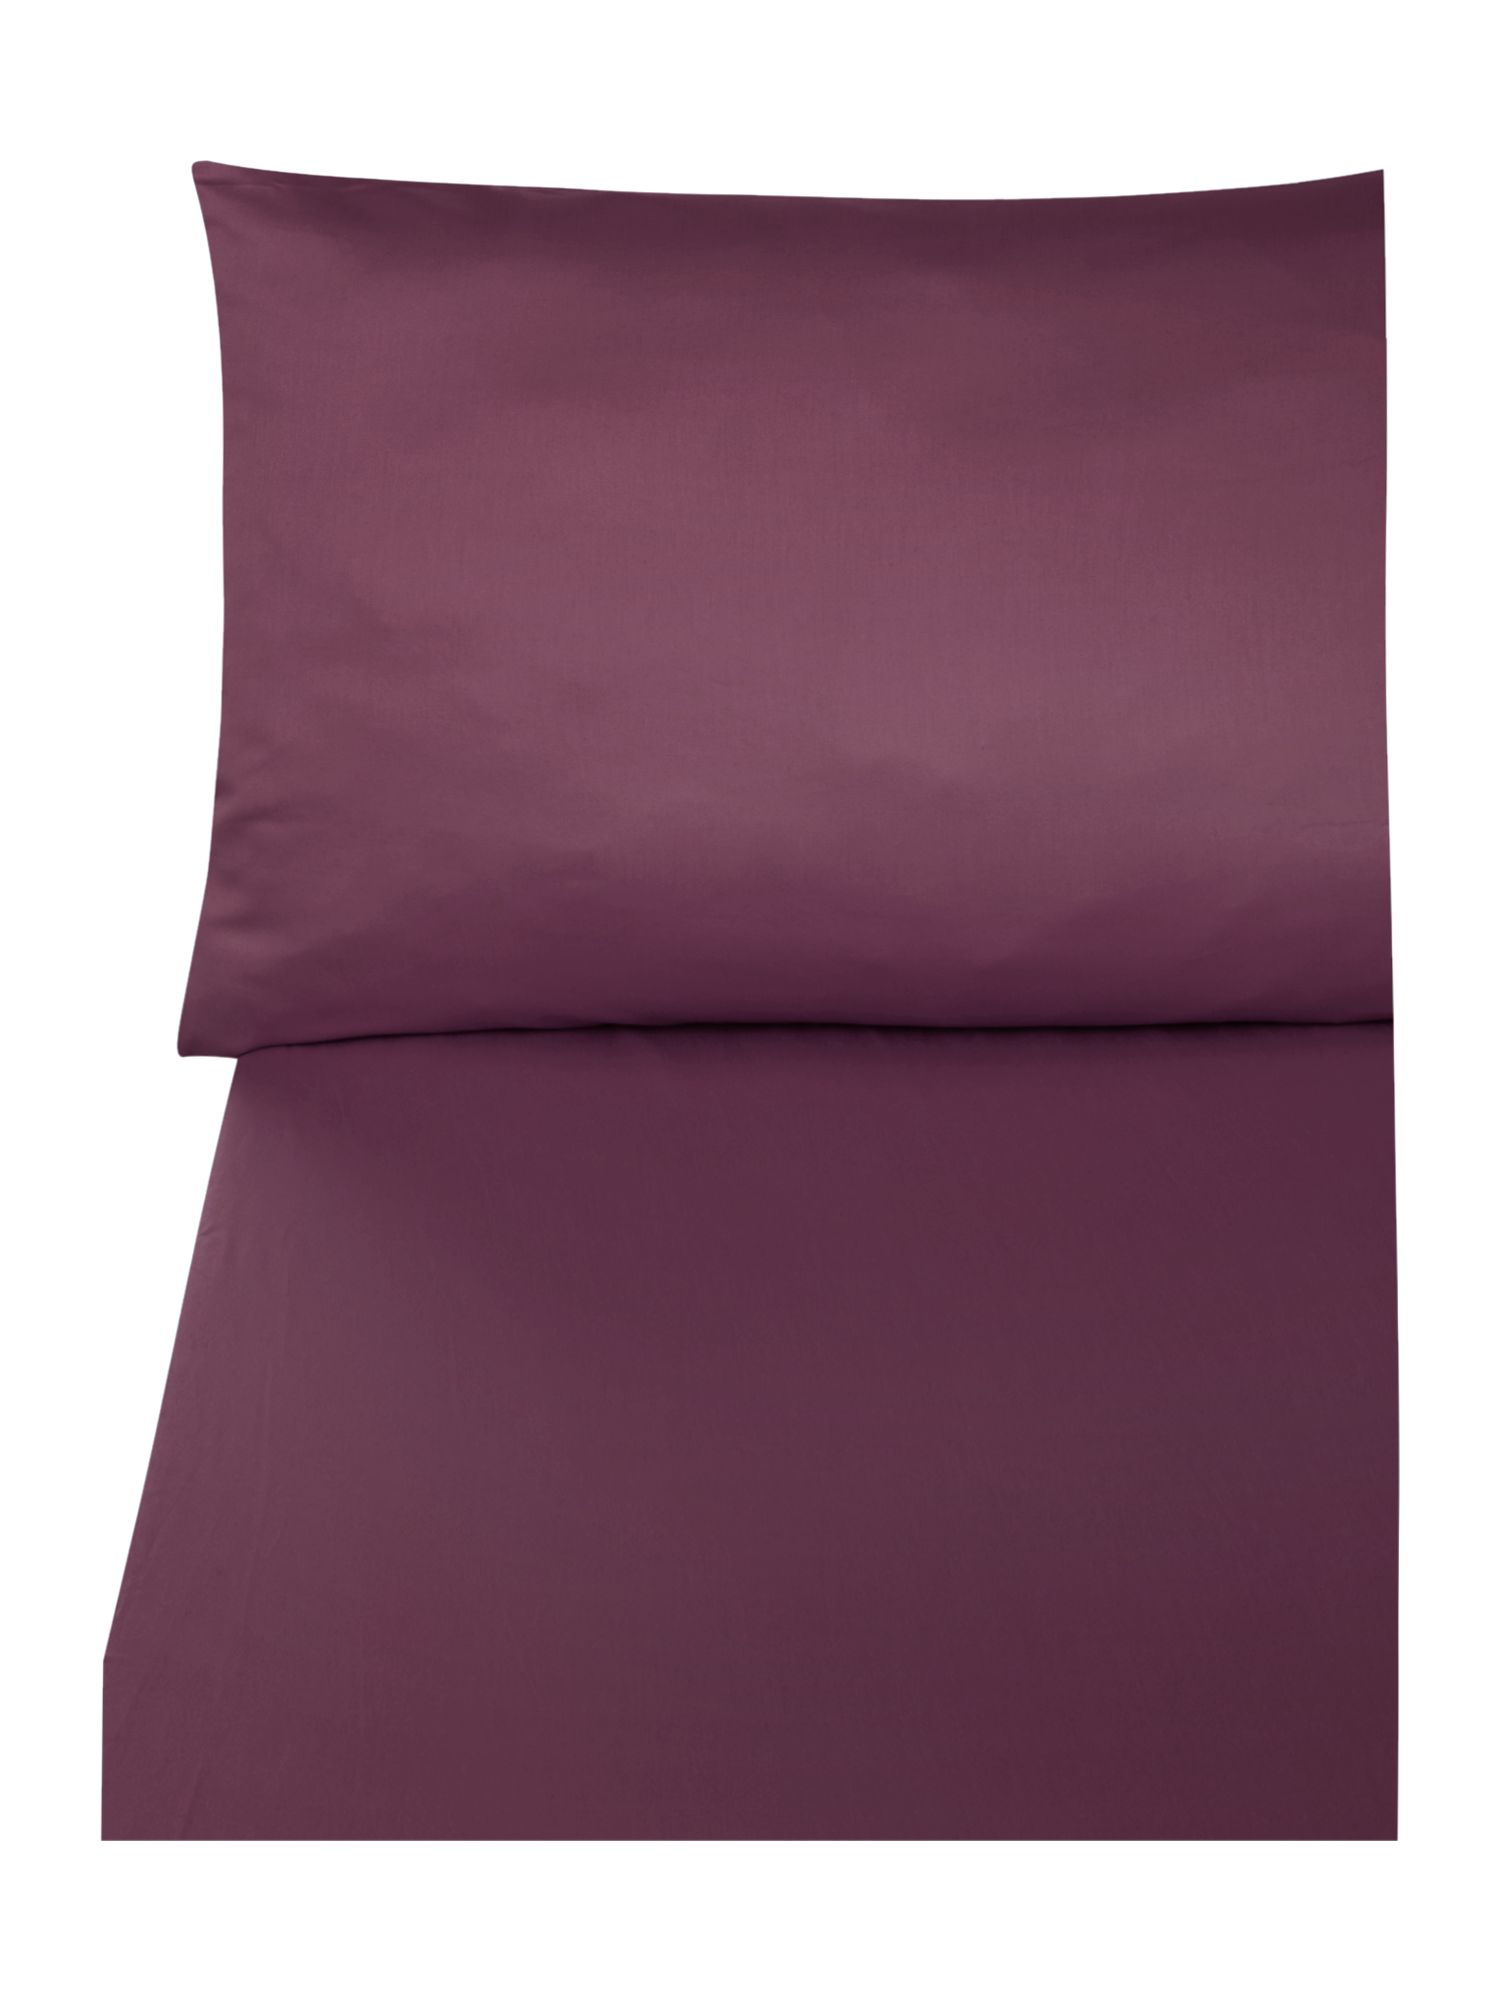 300 bordeaux housewife pillowcase